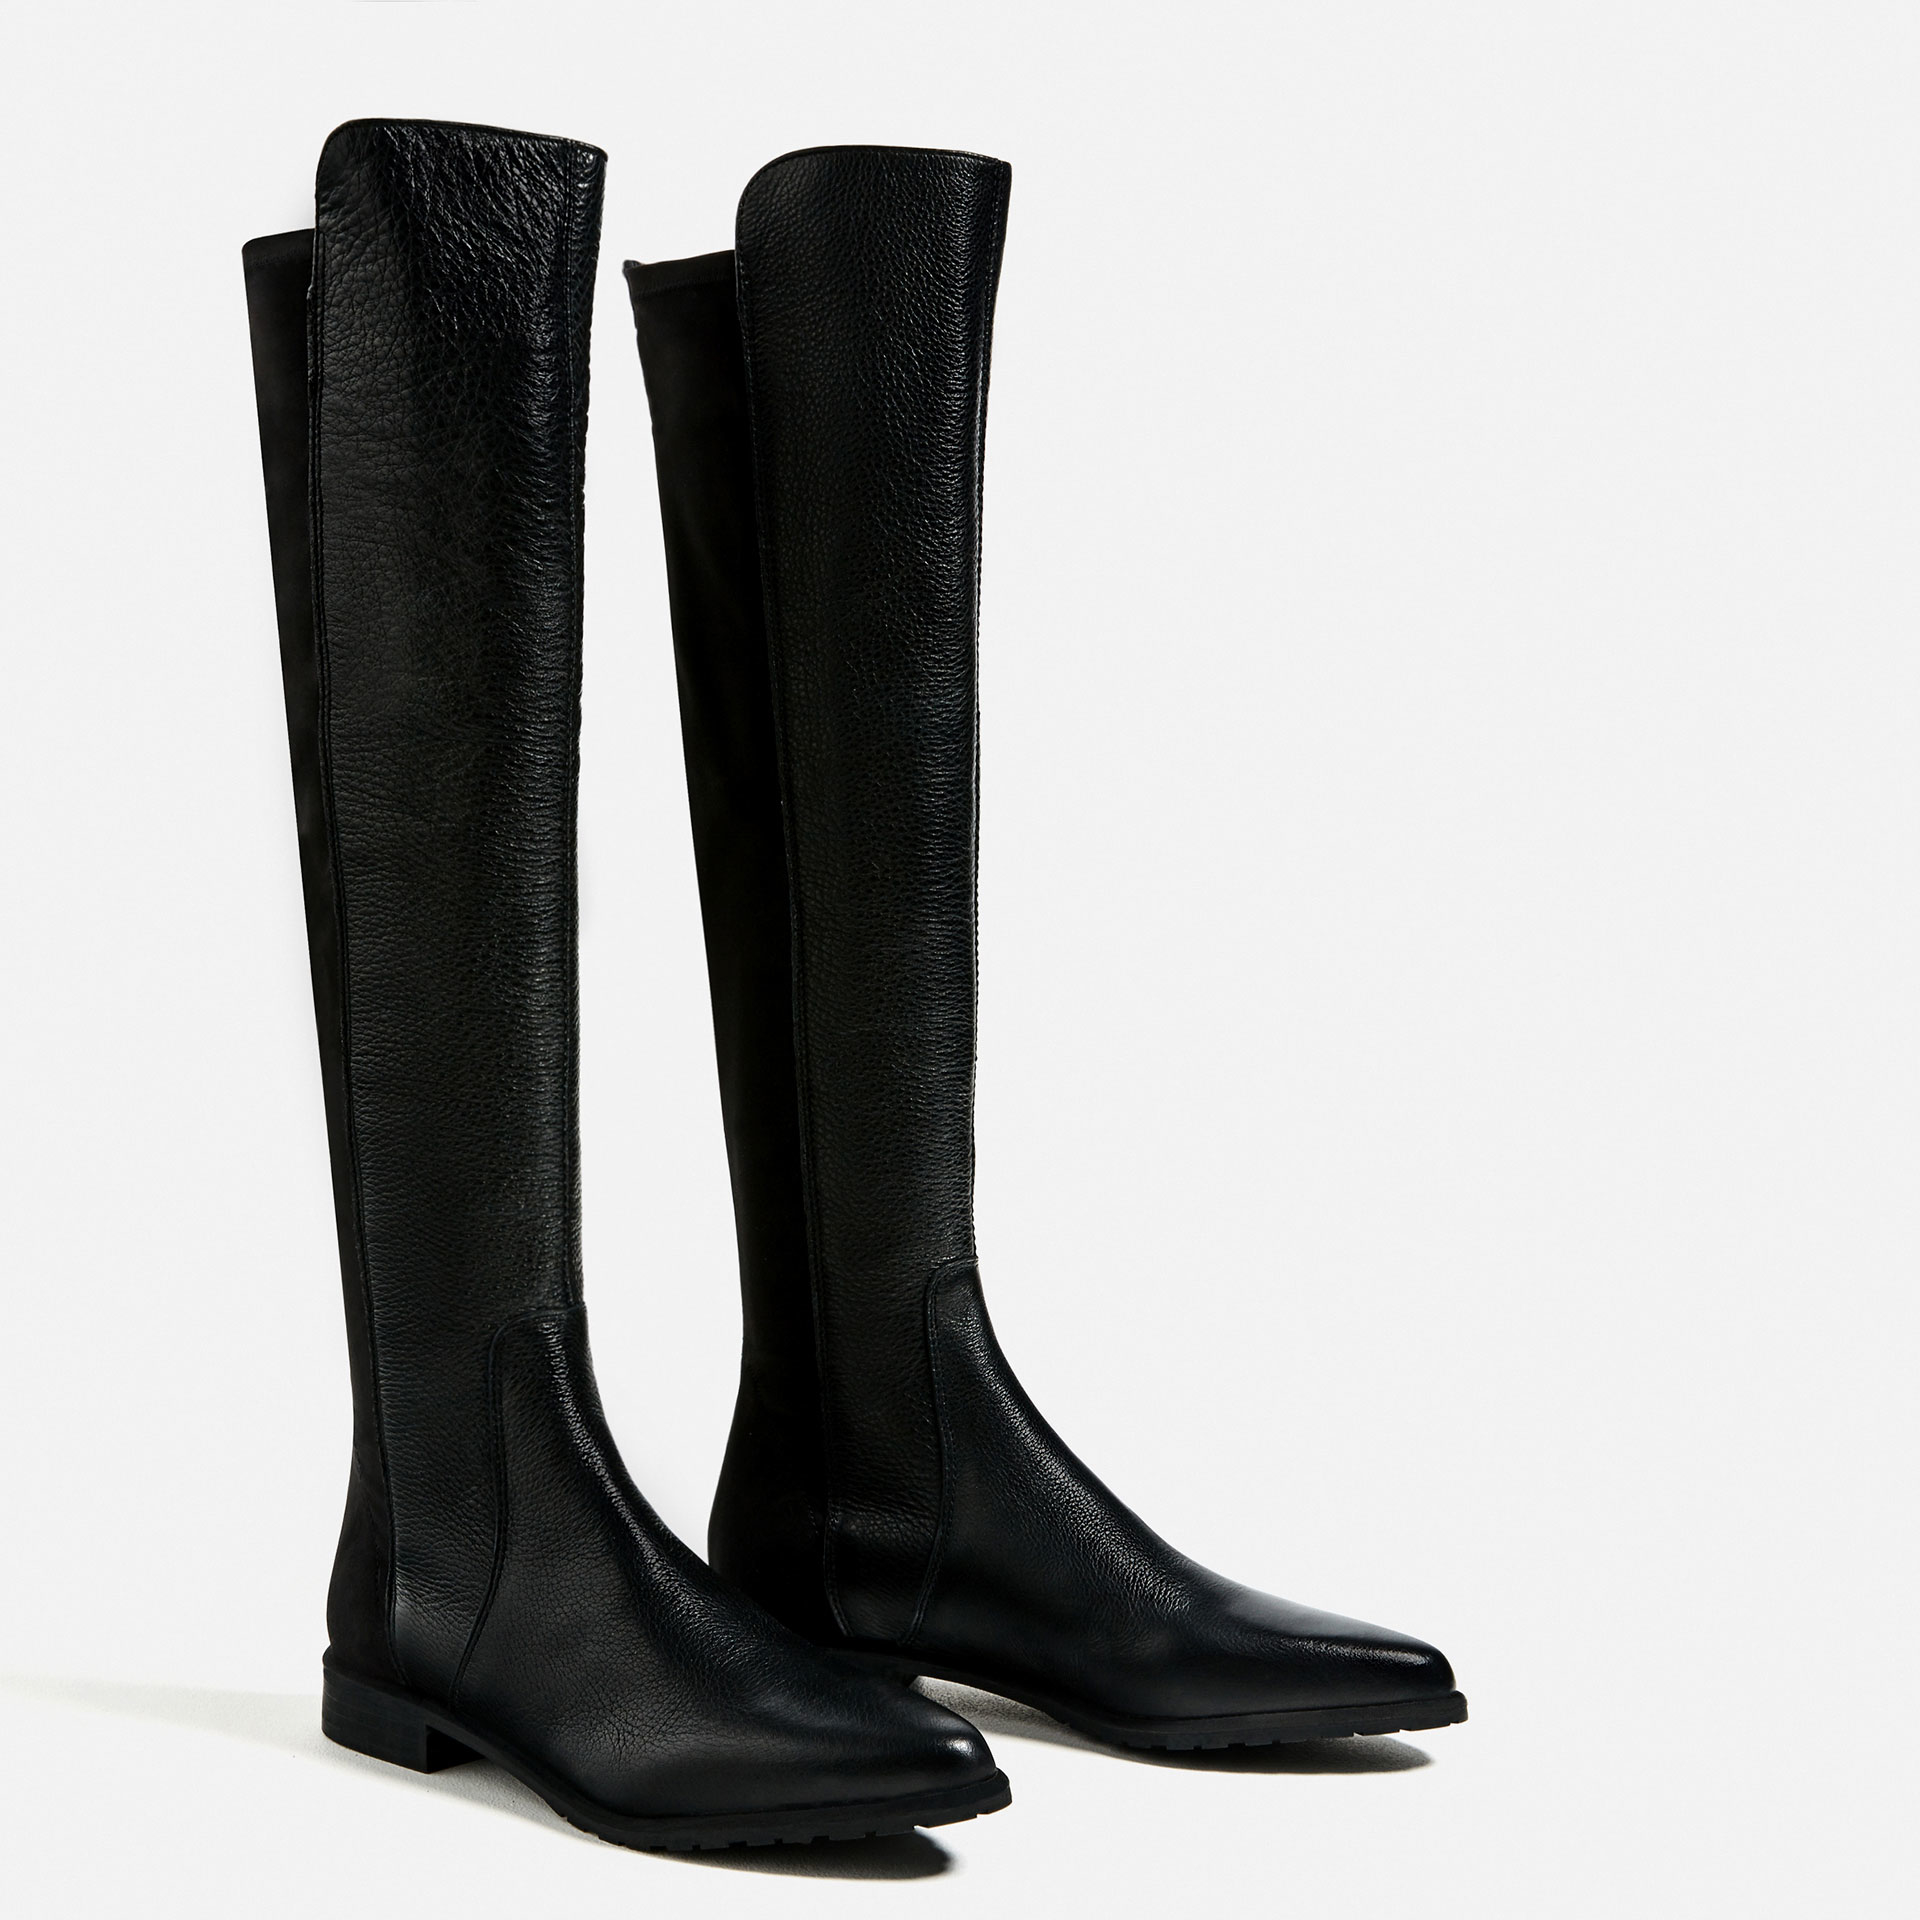 Lastest Multicolour ZARA Boots  Vestiaire Collective